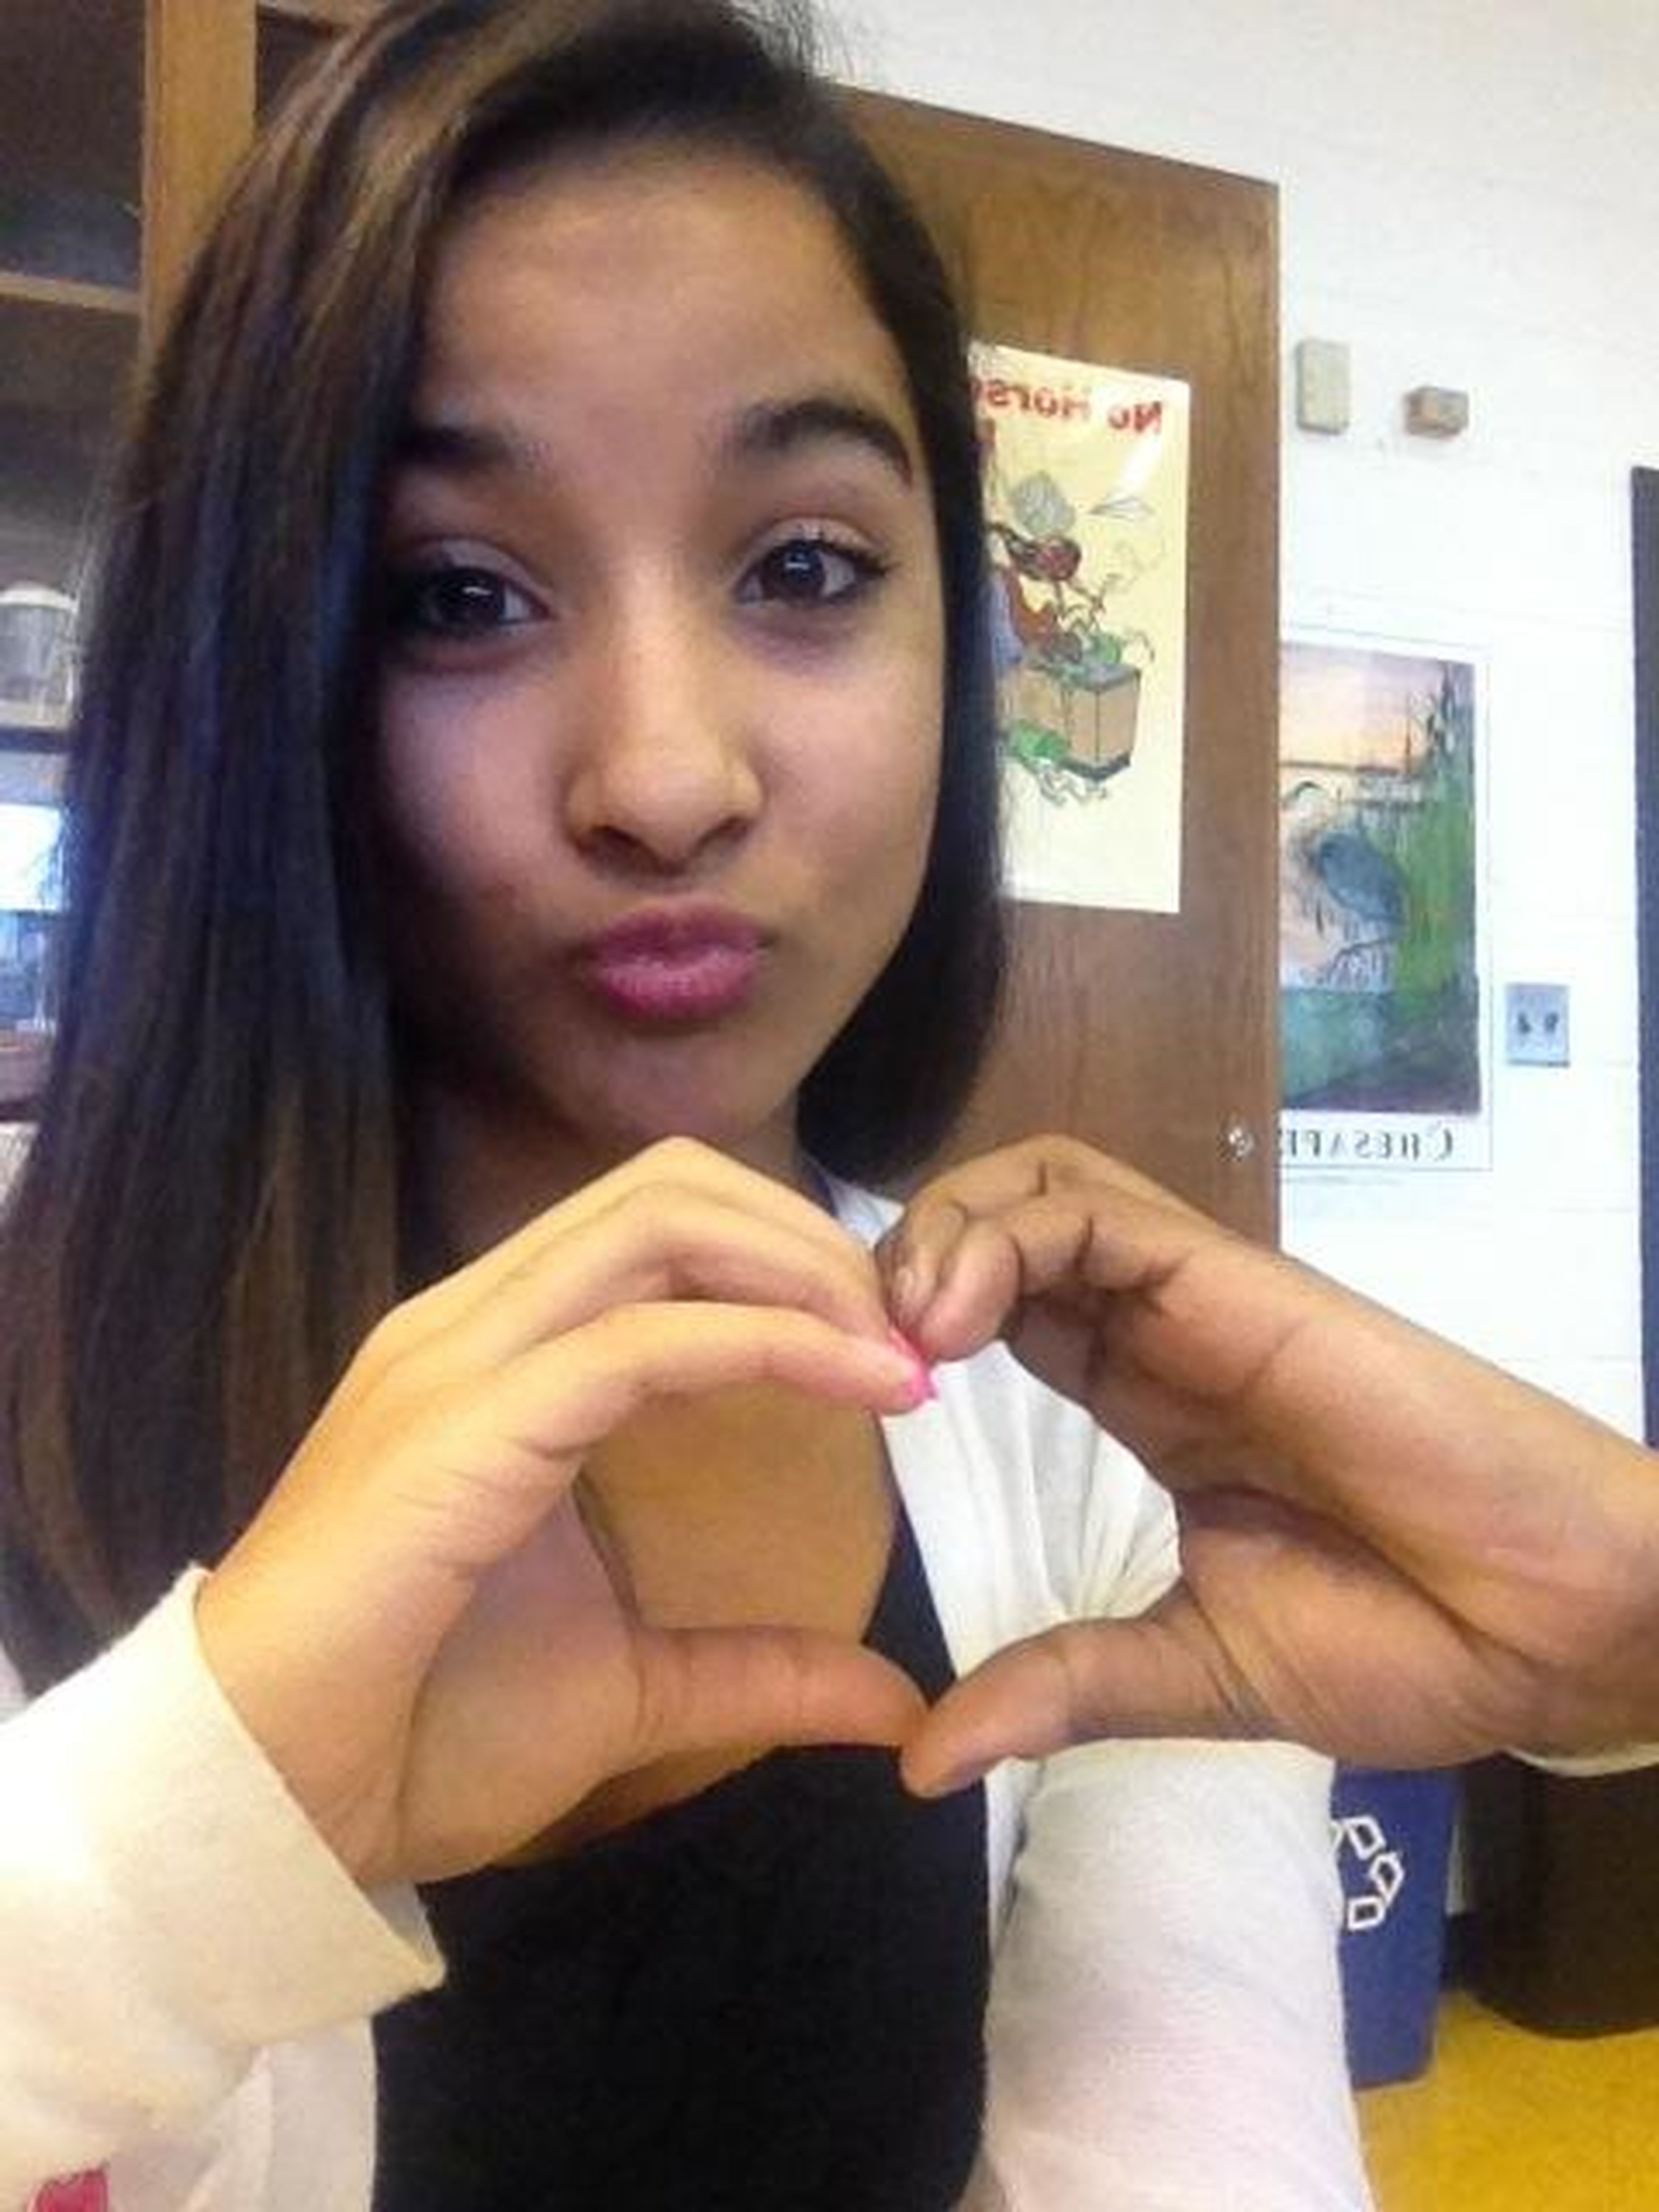 Happy valentines day to my girl Alexis that's her hand